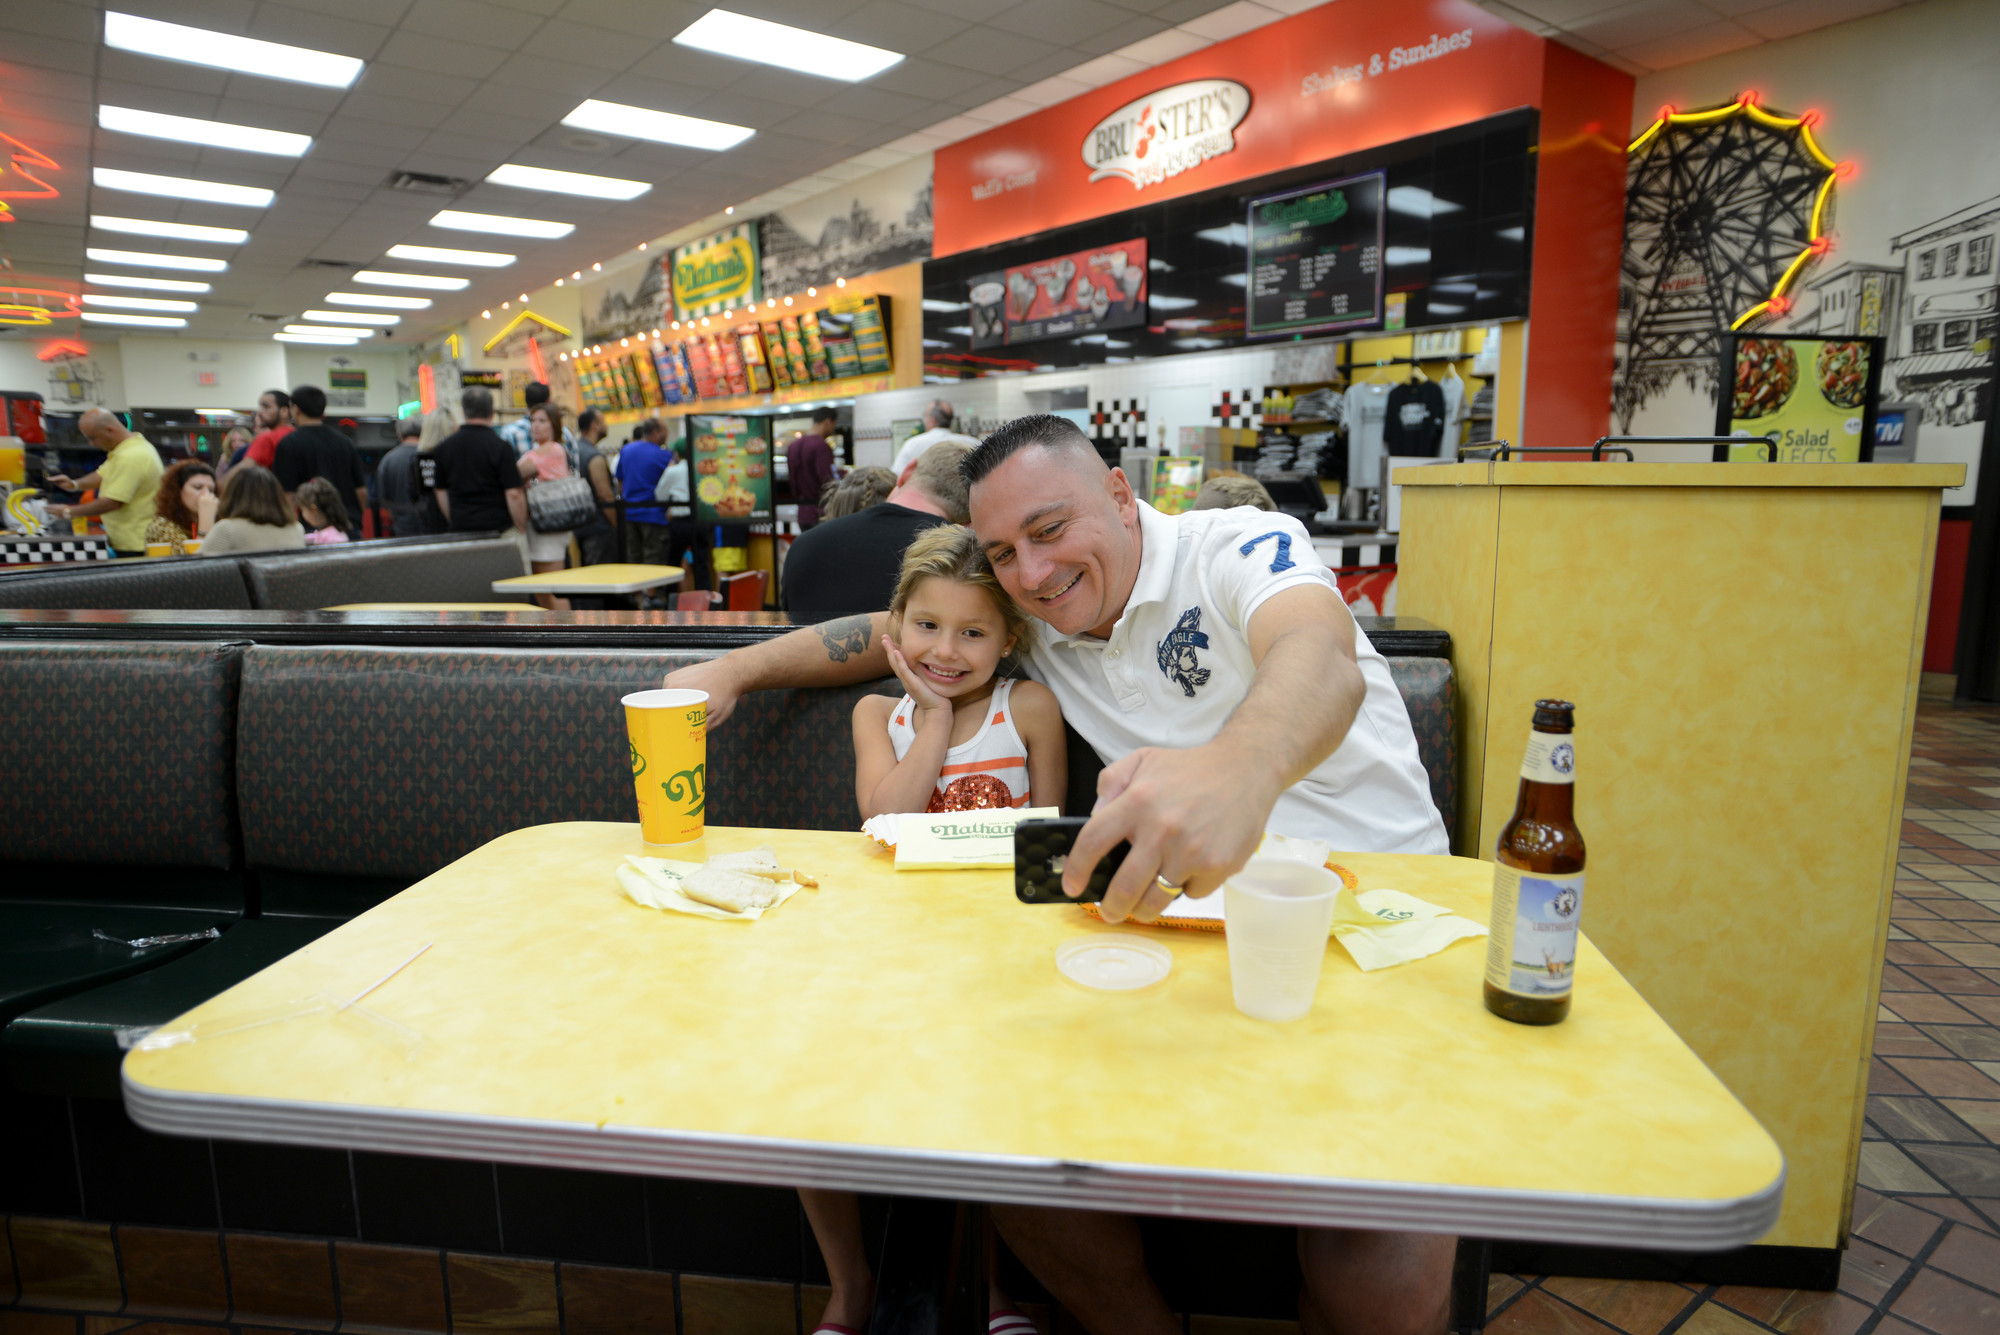 Ava and Frank Morizio took a selfie as they enjoyed their last taste of Nathan's.